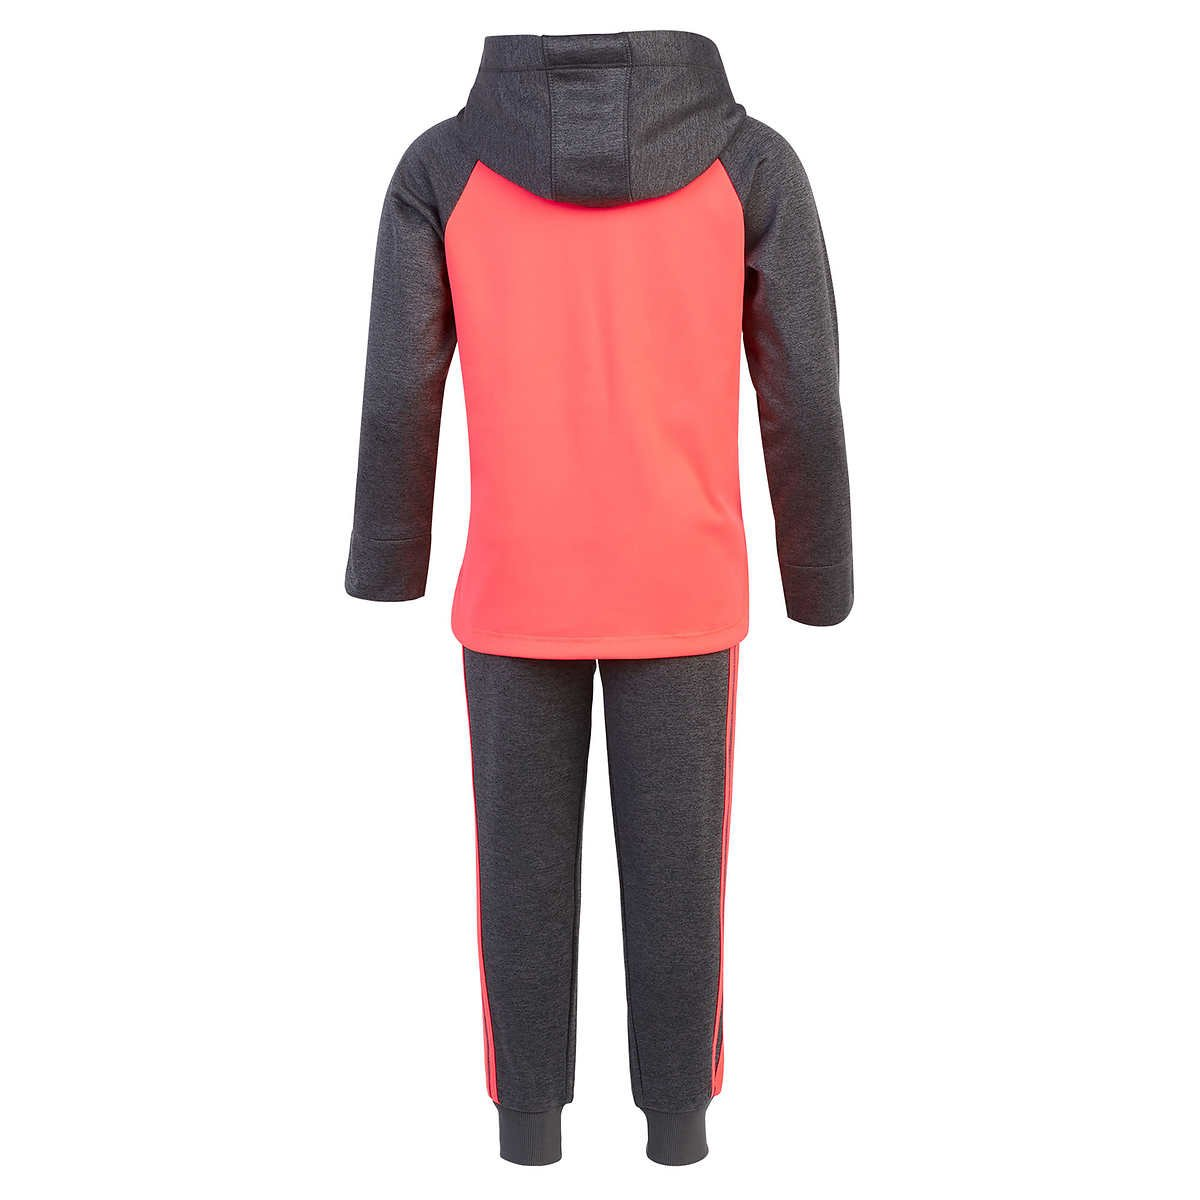 adidas Girls' Tricot Hoodie Jacket and Pant Set (4T, Heather Gray/Neon Pink) by adidas (Image #2)